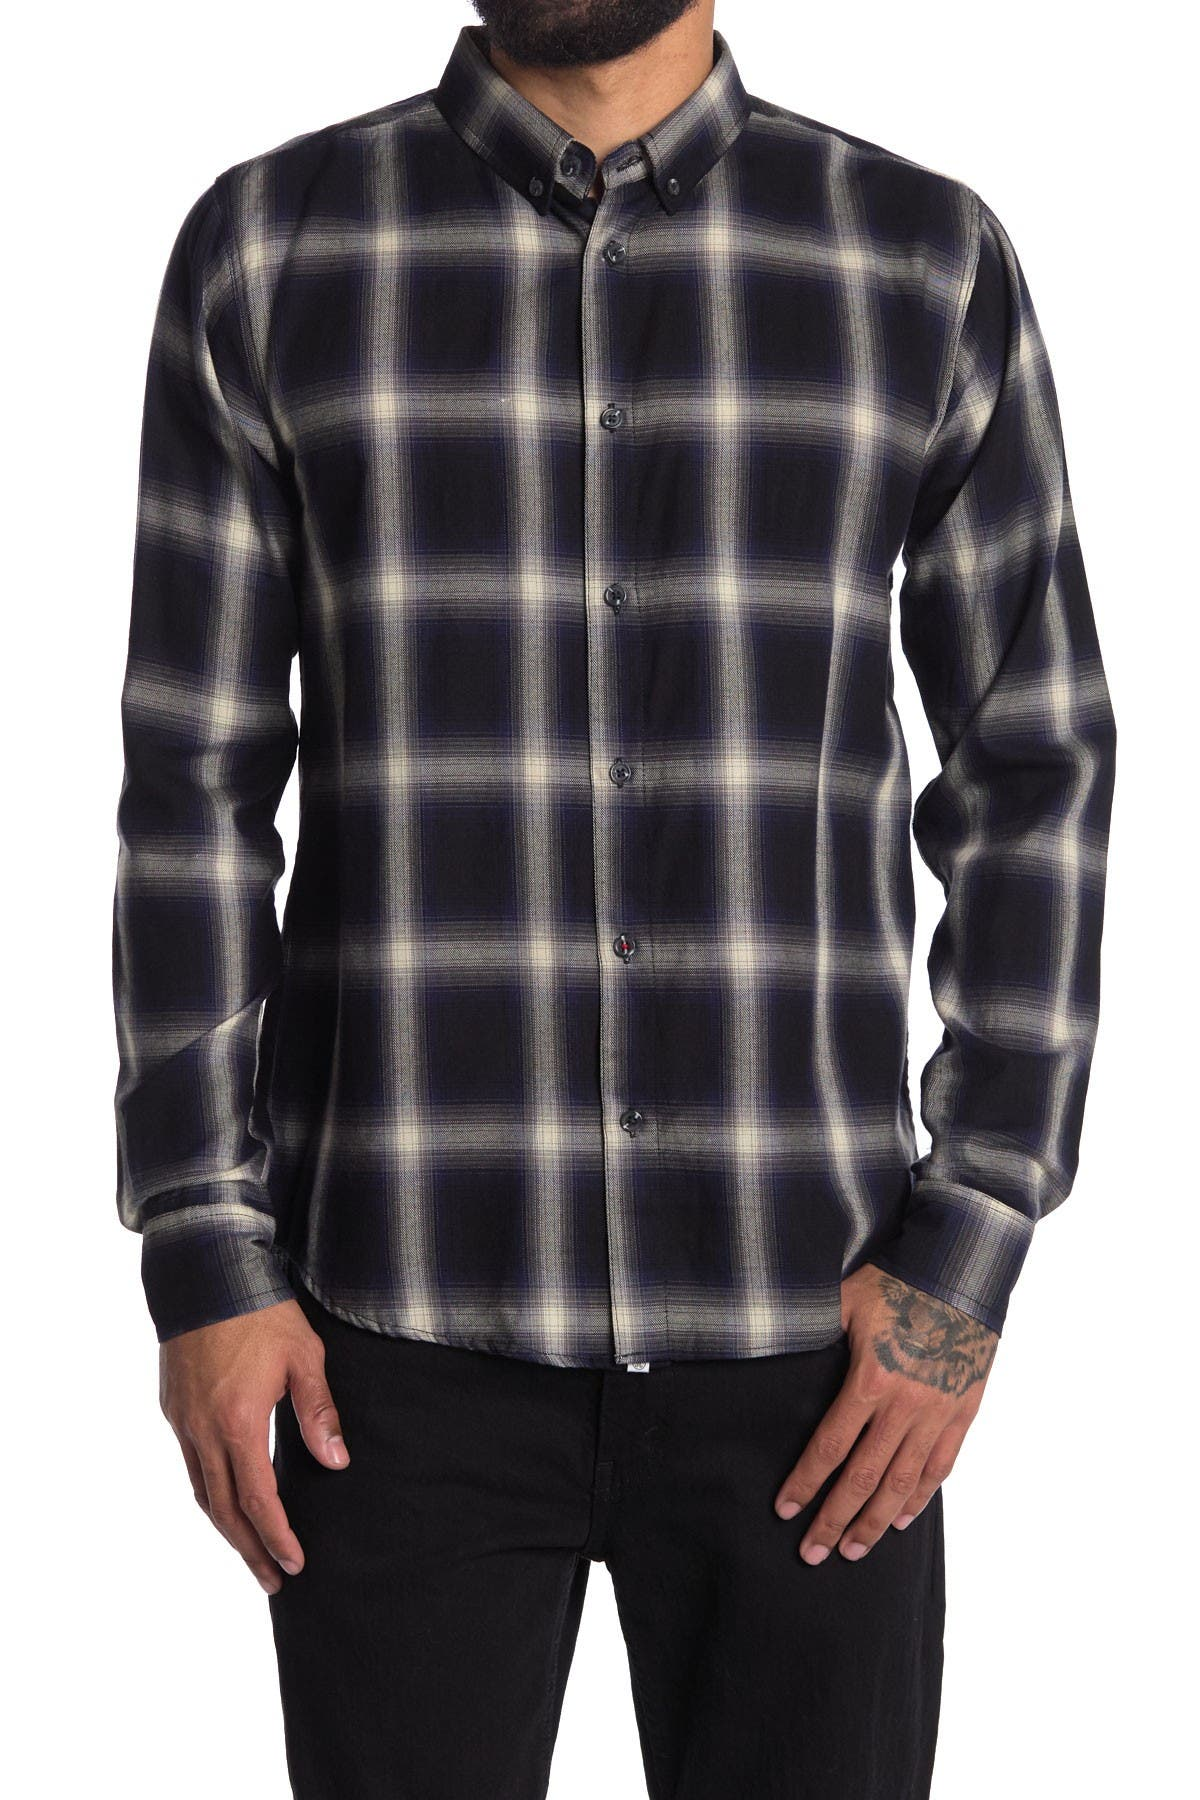 Image of Sovereign Code Outline Plaid Shirt